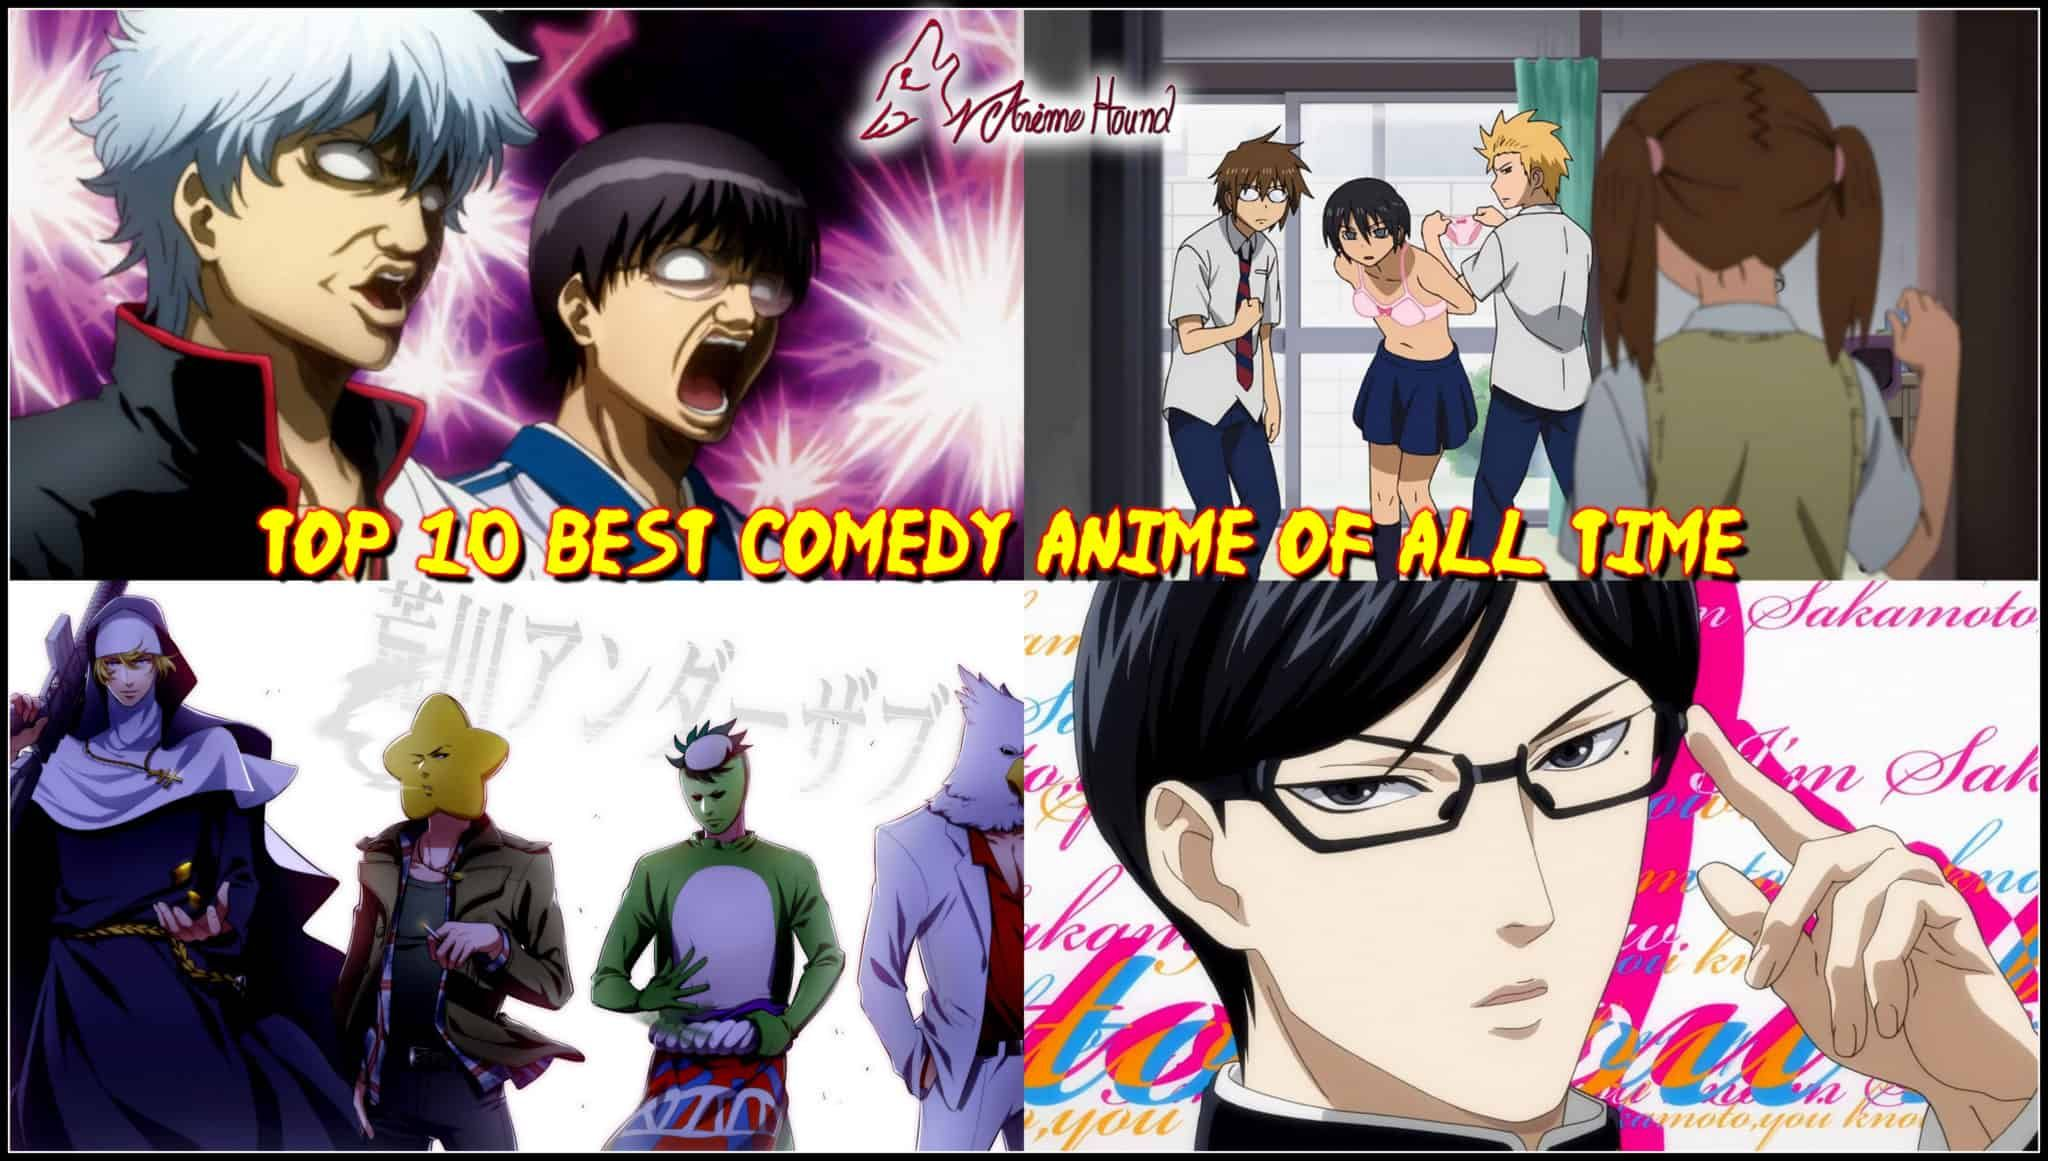 Top 10 Comedy Anime of All time... Best comedy anime